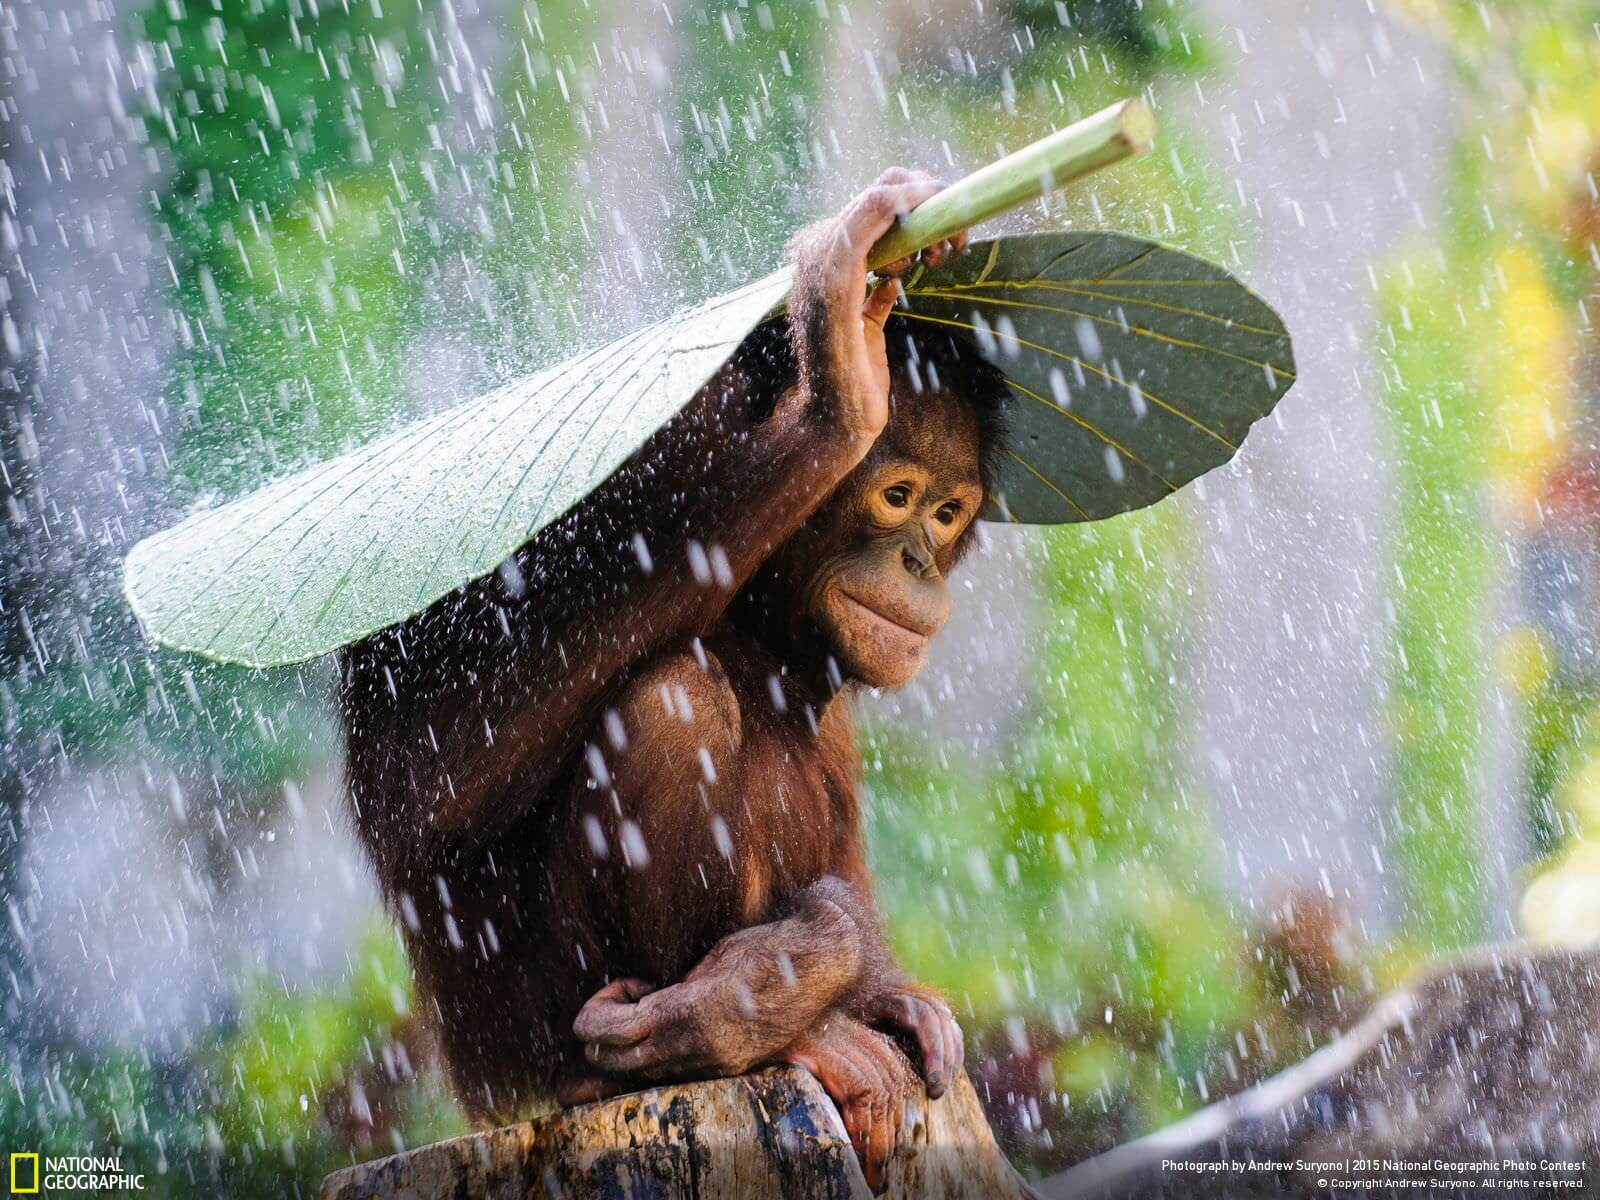 """""""Orangutan in the Rain""""   """"I was taking photos of orangutans in Bali, Indonesia, when it started to rain. Just before I put my camera away, I saw this orangutan take a taro leaf and put it on top on his head to protect himself from the rain! I immediately used my DSLR and telephoto lens to preserve this spontaneous magic moment.""""   Denpasar, Bali, Indonesia   Andrew Suryono"""